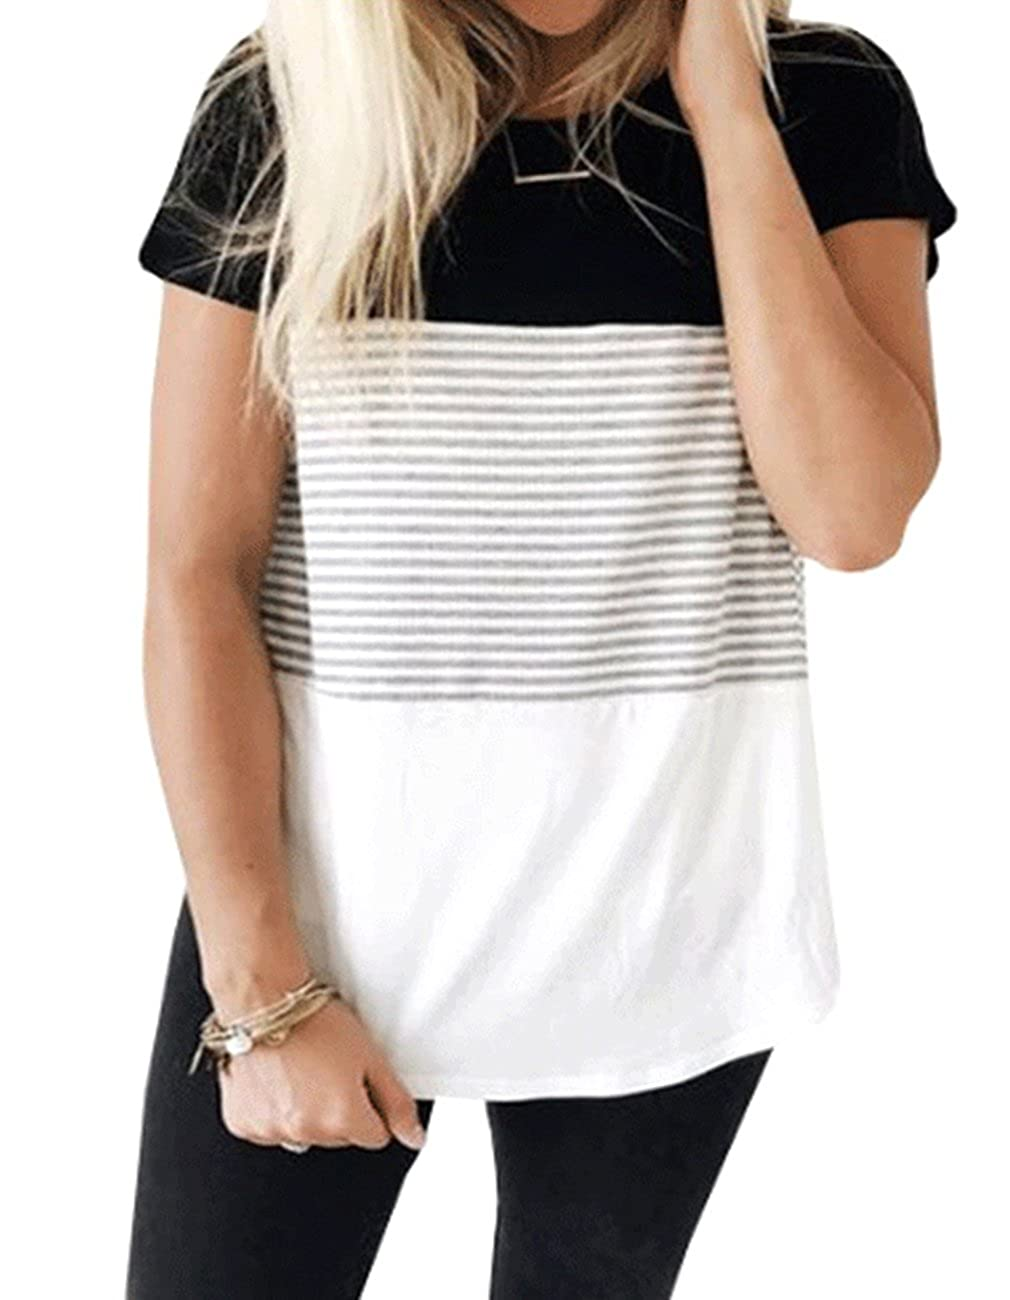 c3d896f983a Run big and not a slim fit womens t shirt, Casual loose cotton flexible  striped blouse for women,girls, junior, if you want slim fit you can choose  ...